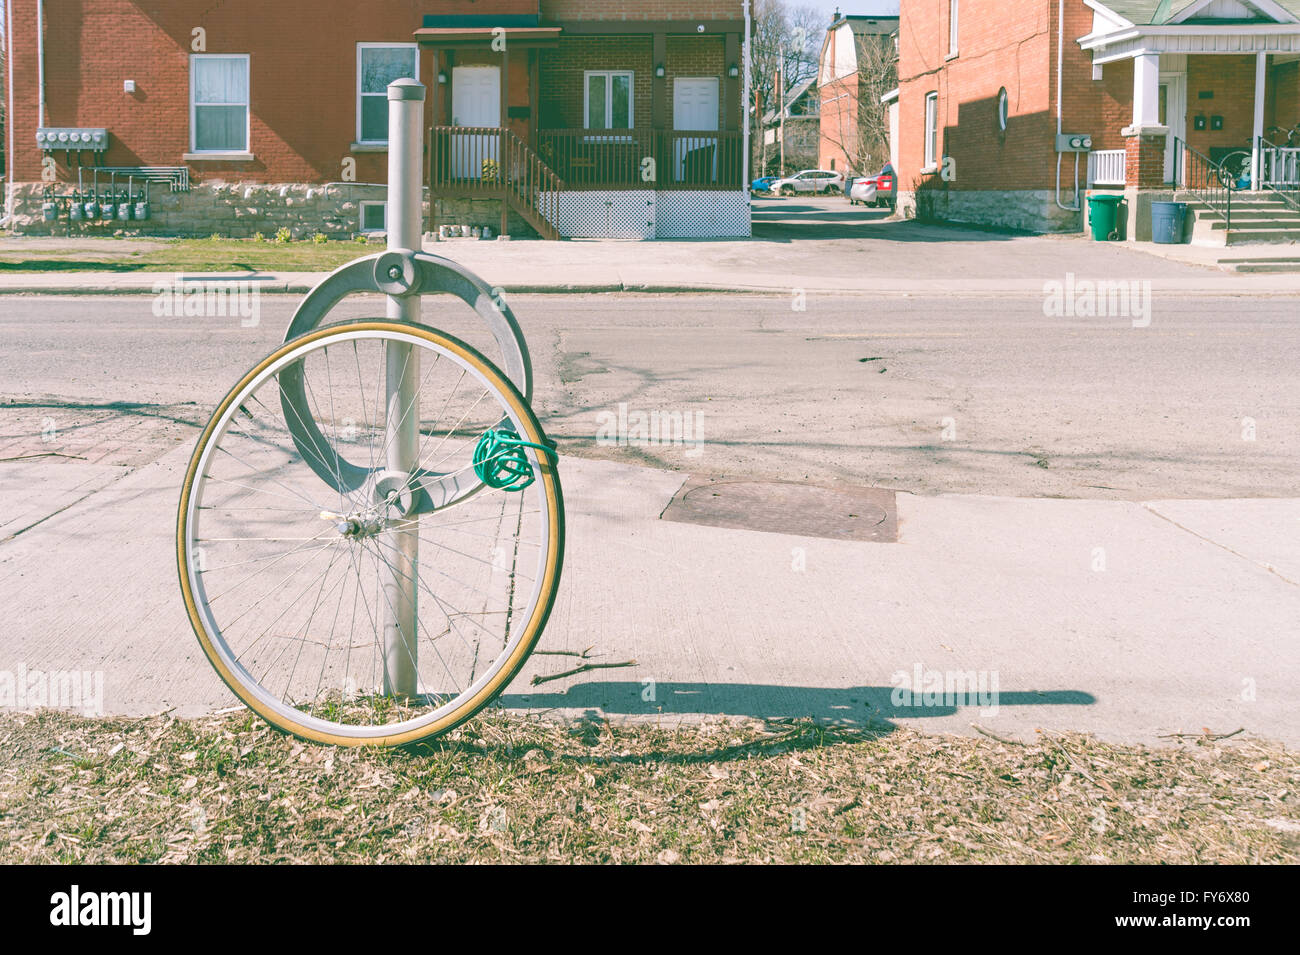 Bike theft with locked wheel in Ottawa, Canada (vintage filter) - Stock Image